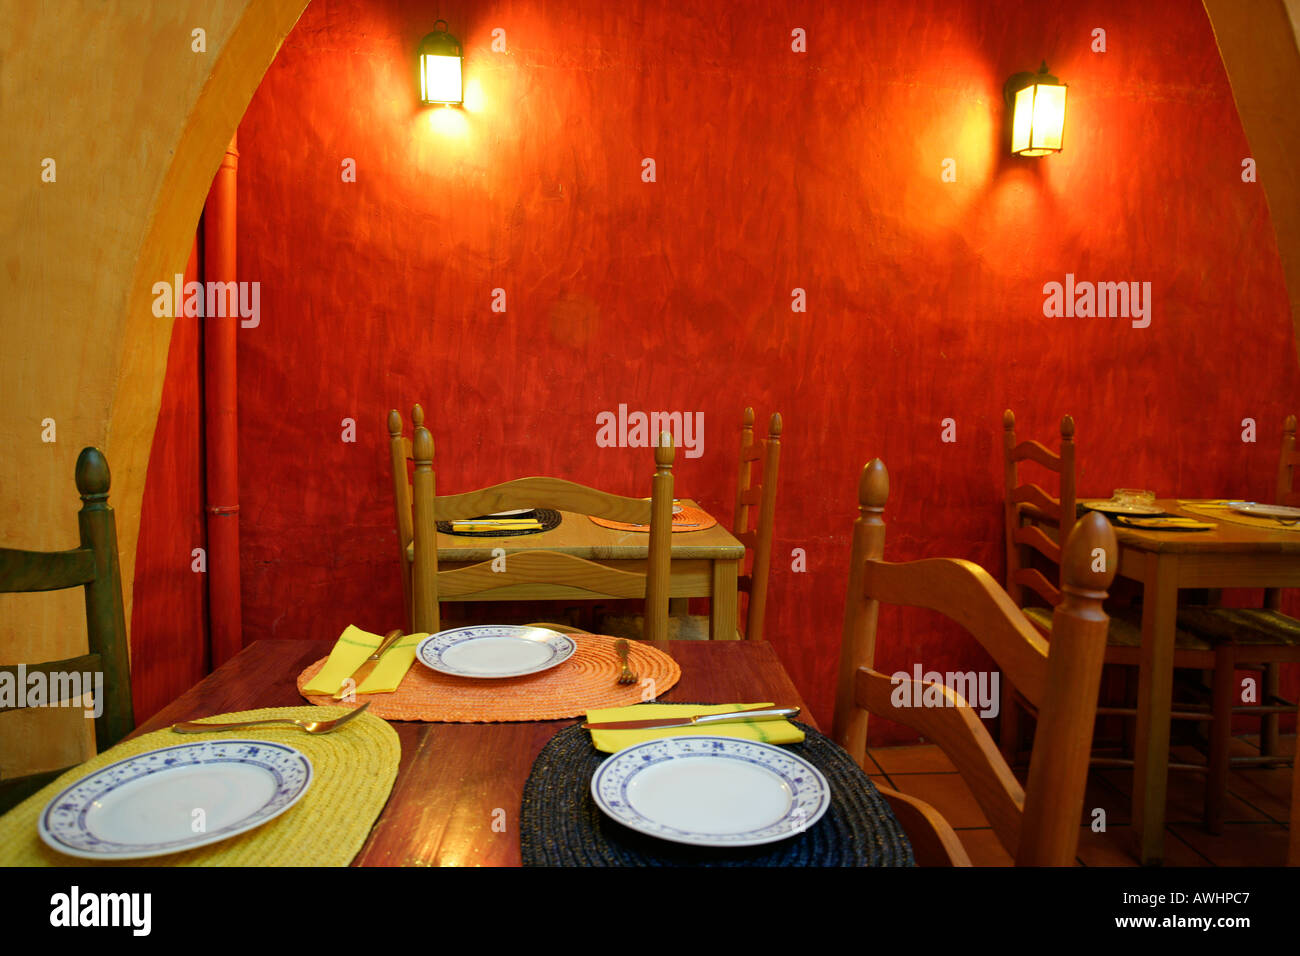 The rustic interior of a restaurant painted in bright warm colors ...